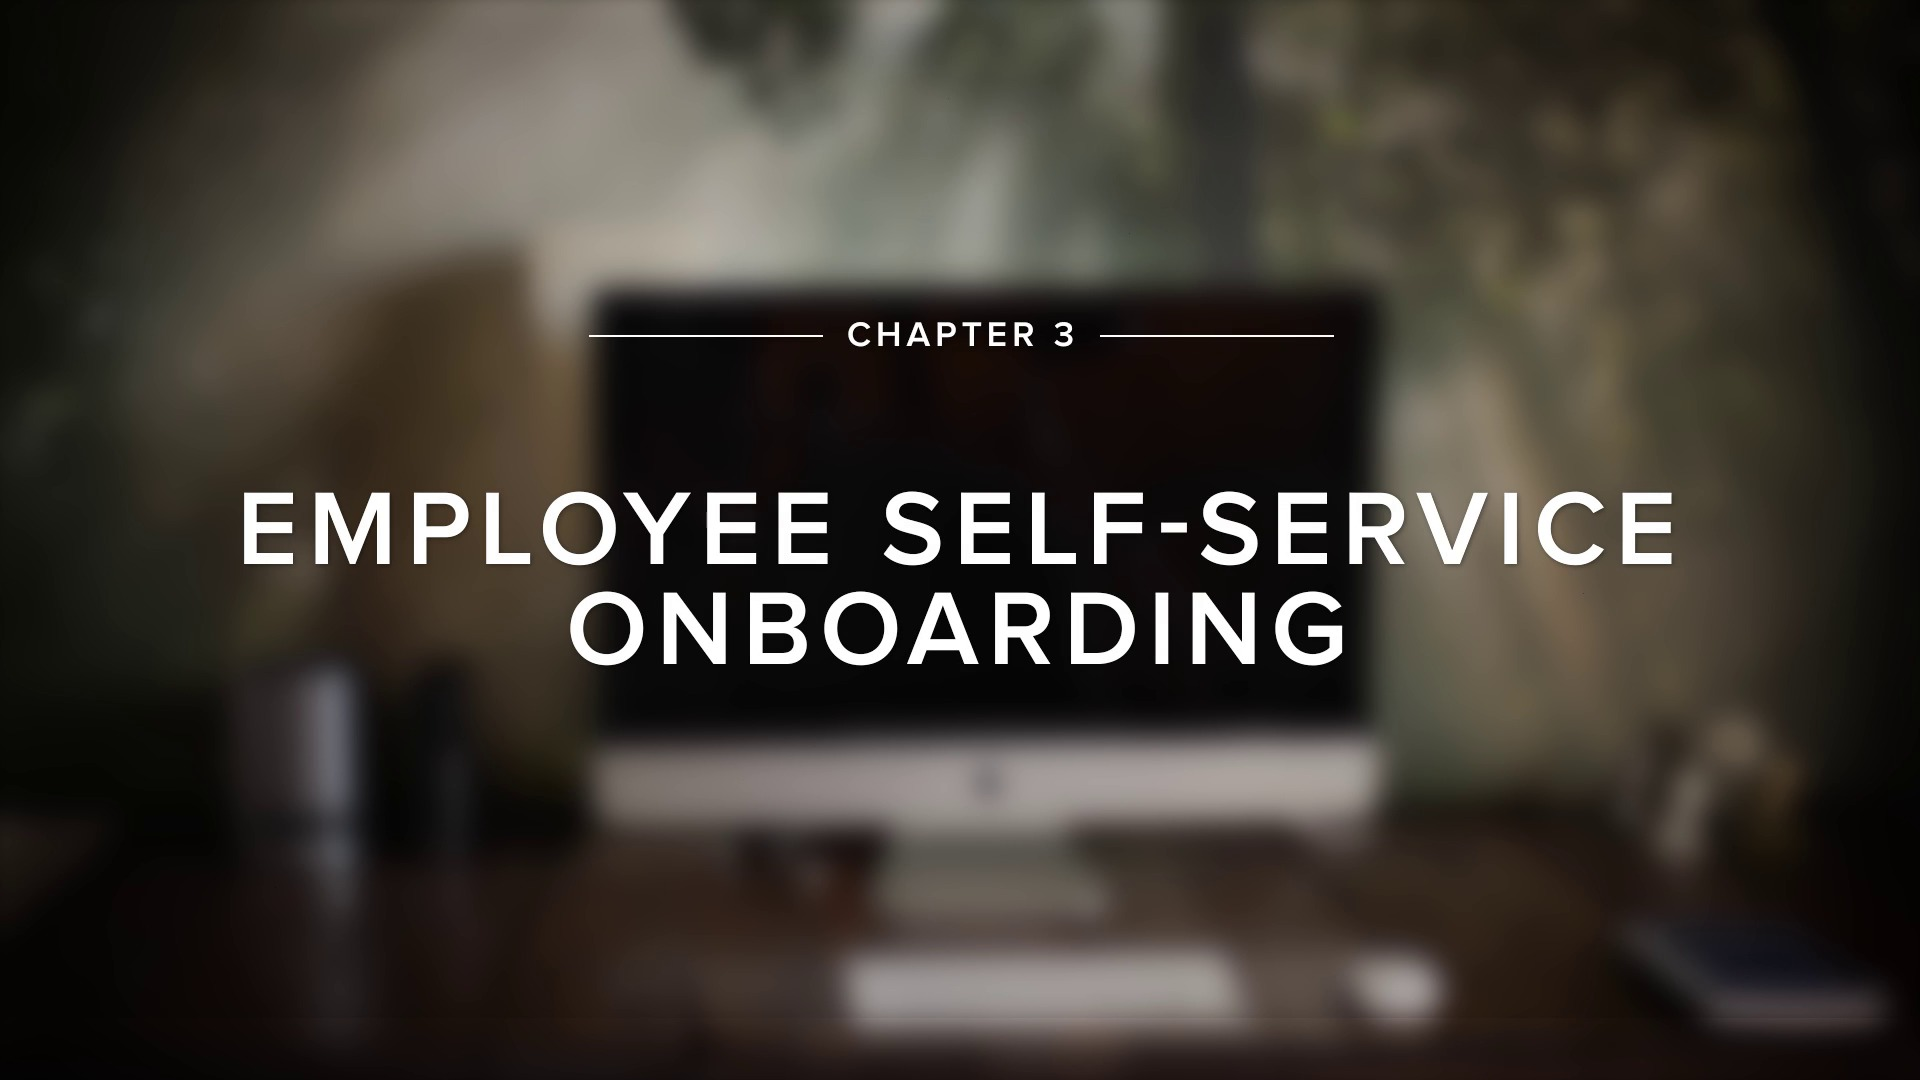 HR Onboarding Software for New Employees - Employee Onboarding